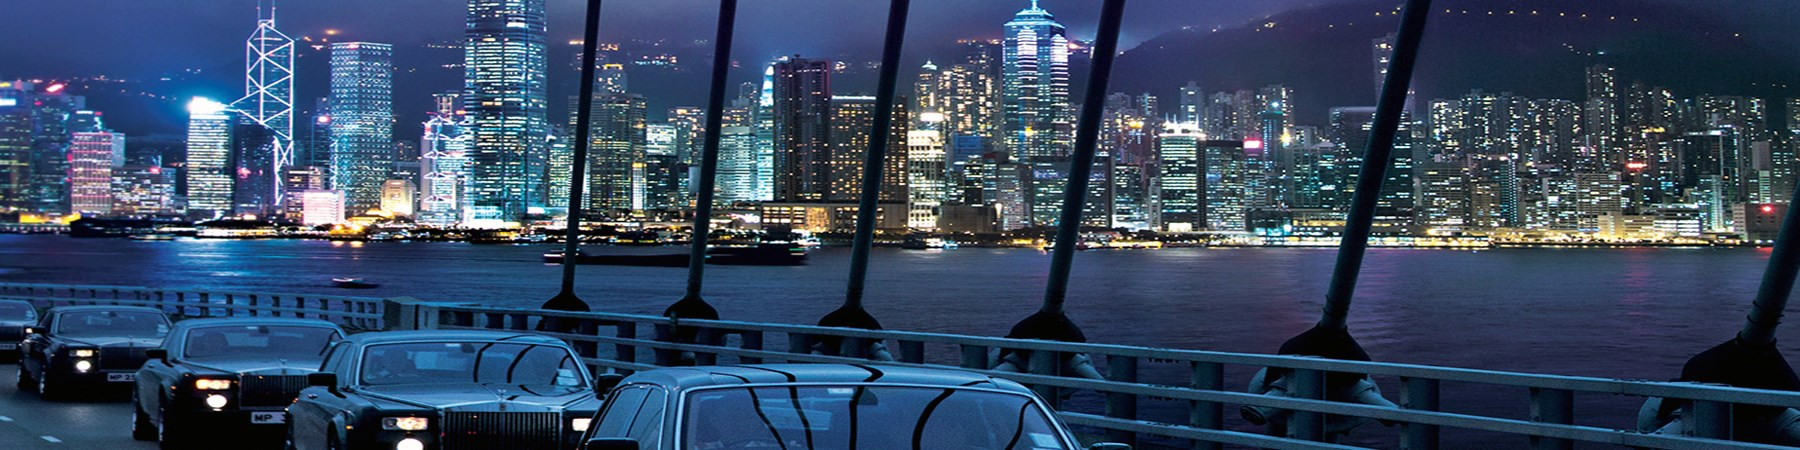 Hong Kong Luxury Travel by Peninsula Rolls Royce